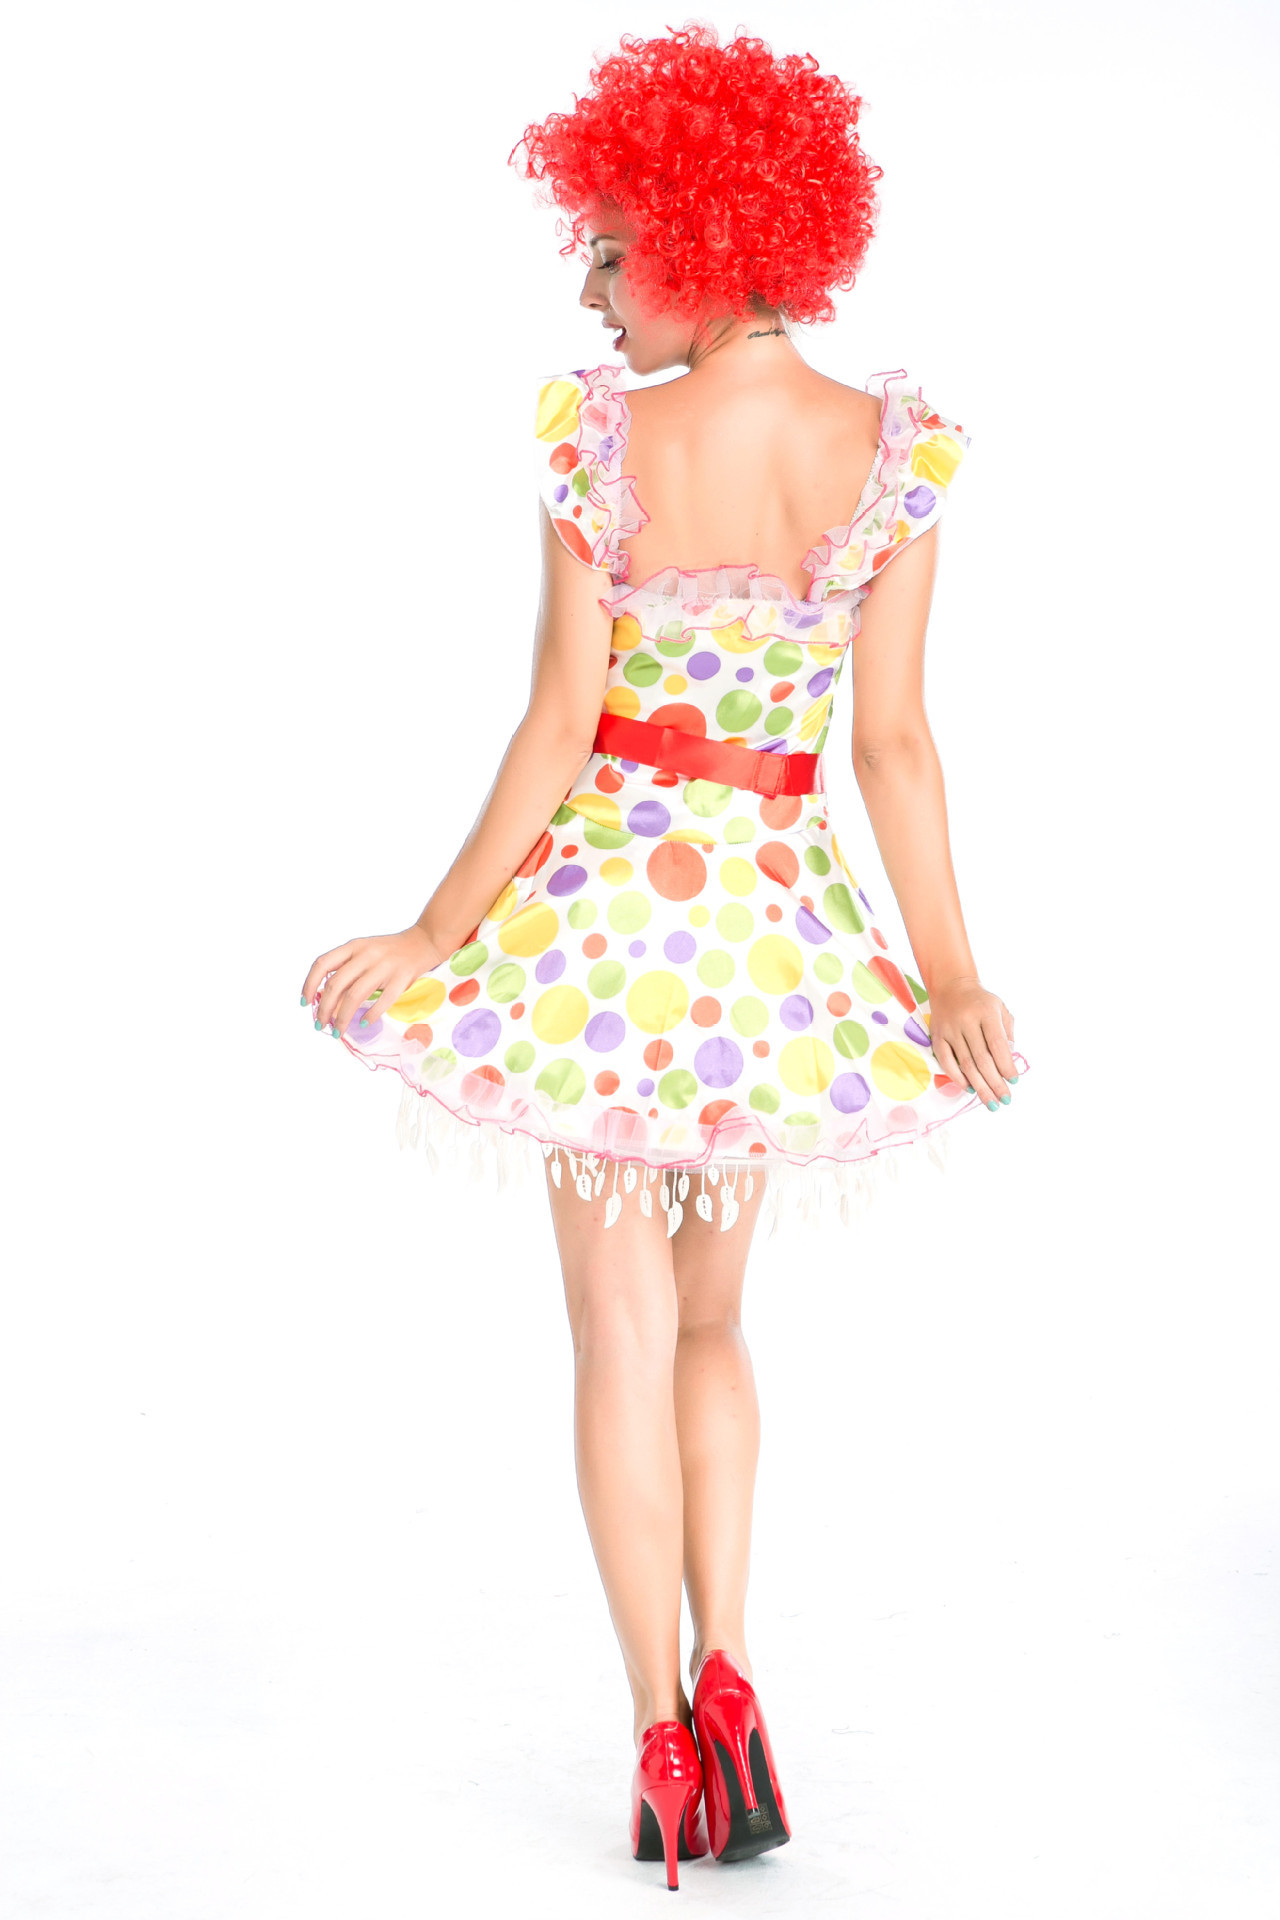 Circus Clown Costume cartoon costume with wig Denis cosplay costume Halloween Costume